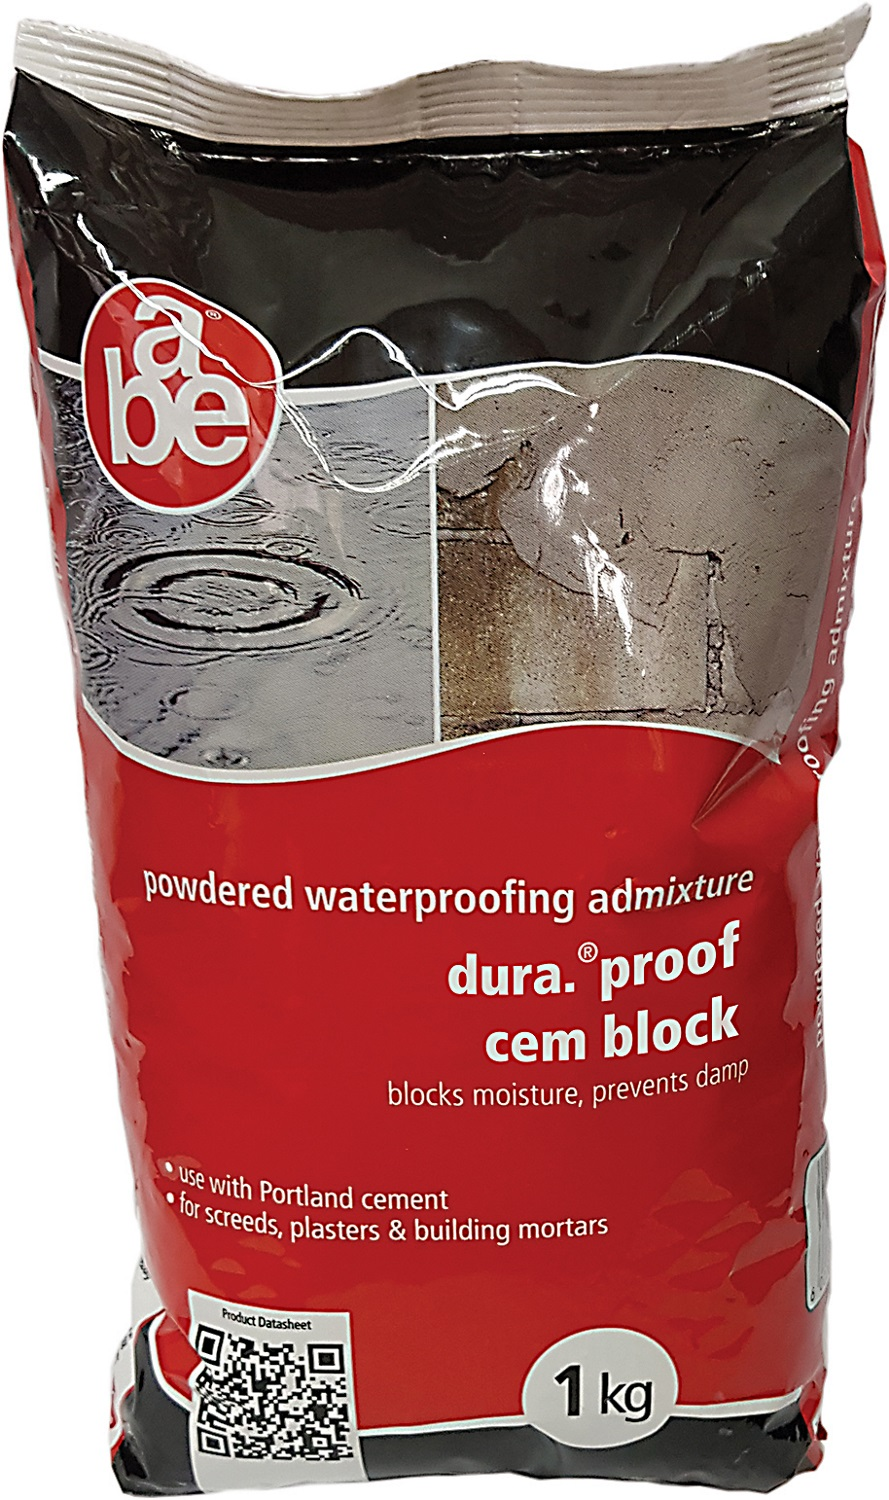 a.b.e. Powdered waterproofer blocks moisture and prevents dampness in plaster and mortar